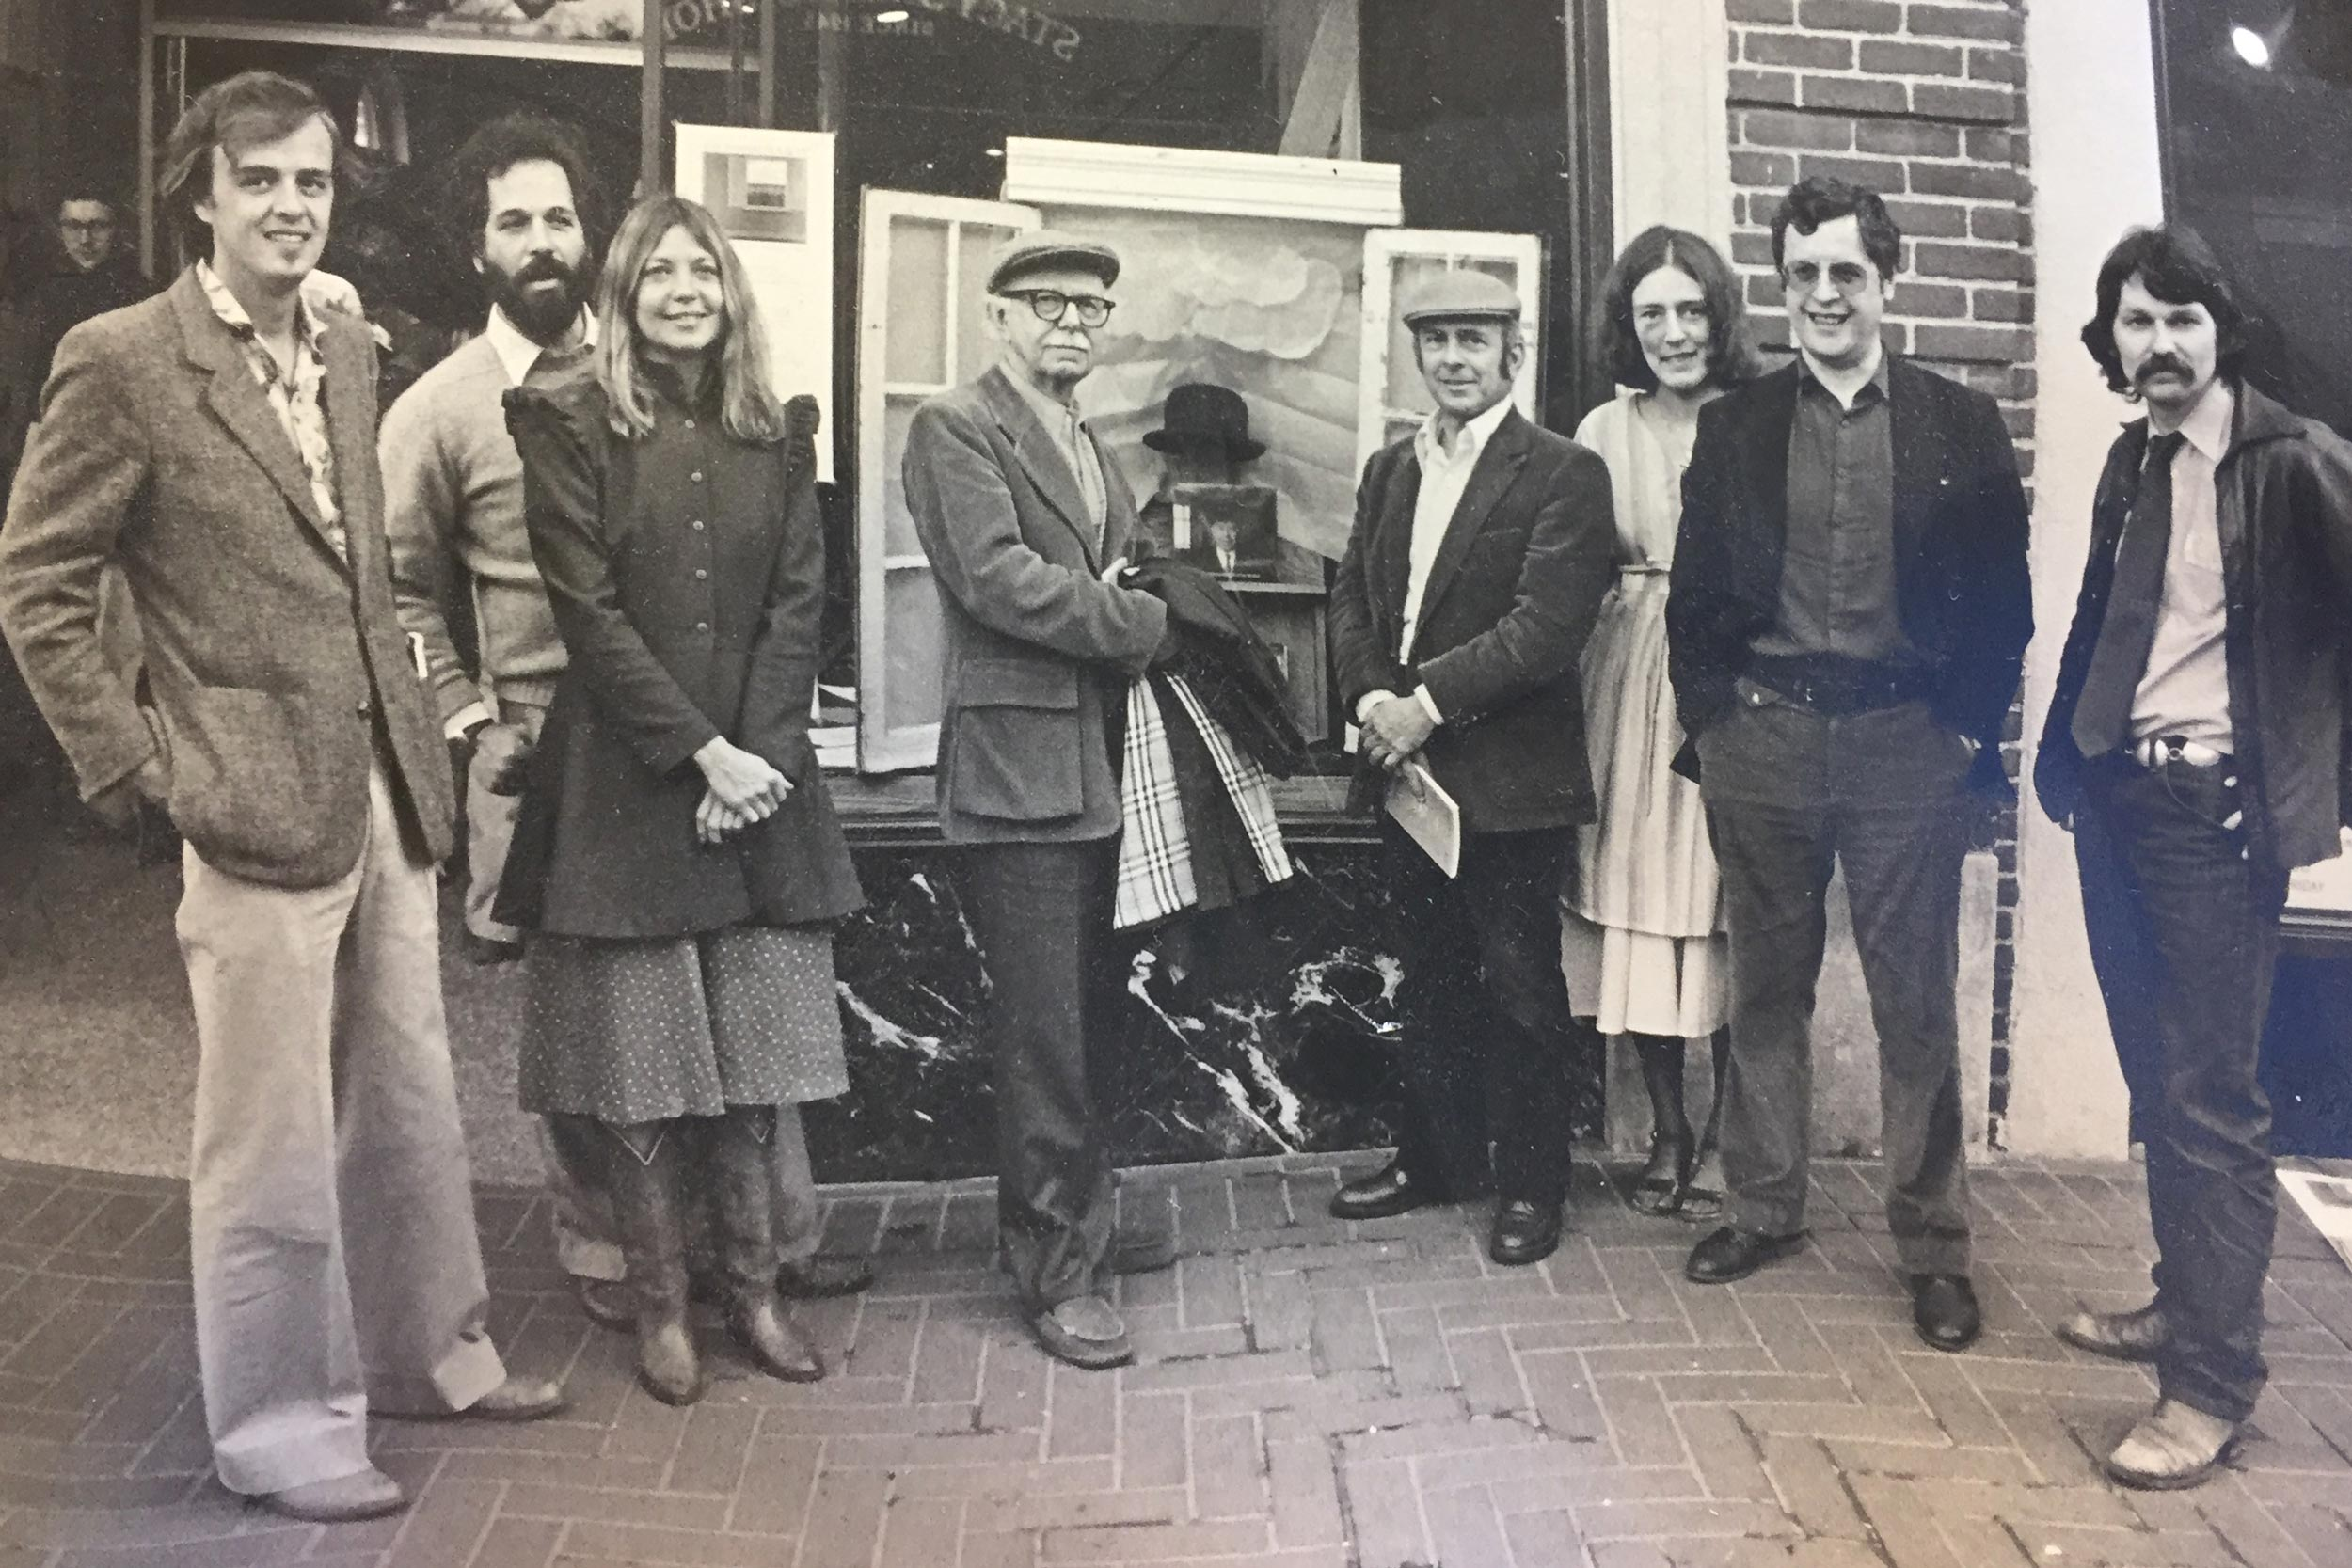 A UVA conference on surrealism in 1978 with poets (from left) James Tate, Ira Sadoff, Carol Muske, David Ignatow, Louis Simpson, McKeel McBride, Charles Simic and Greg Orr, at the old Williams Corner Bookstore on the Downtown Mall.